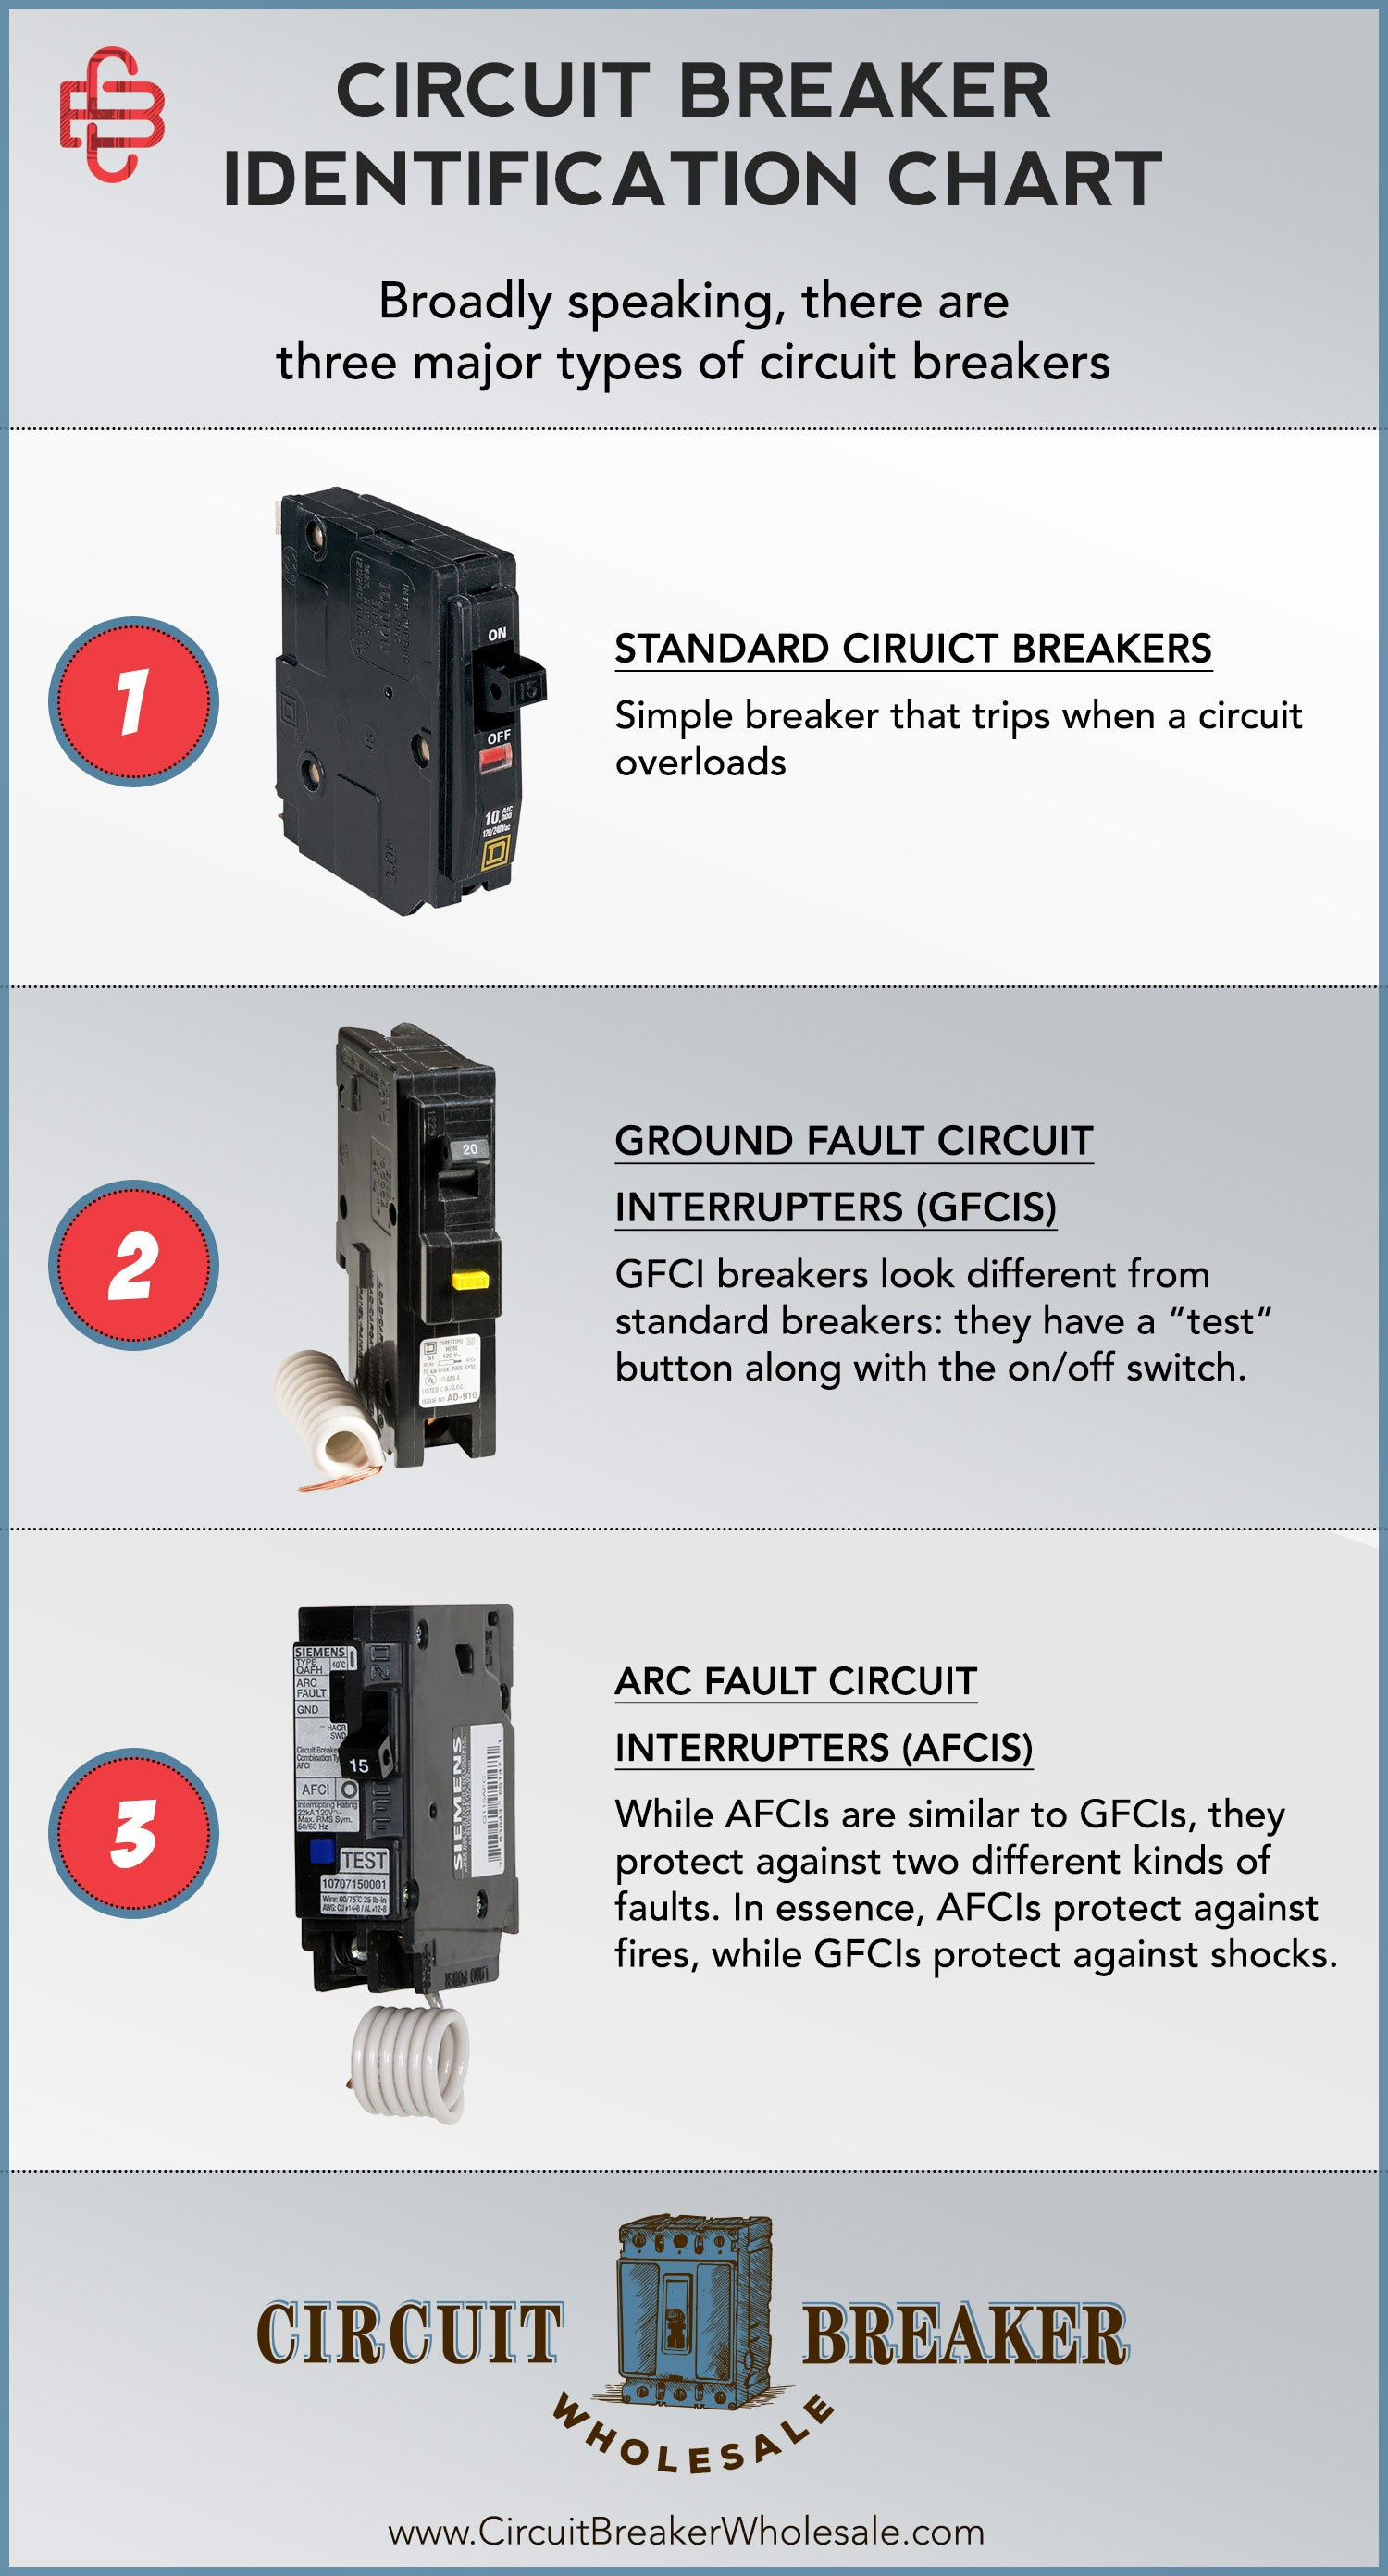 How To Identify Circuit Breakers